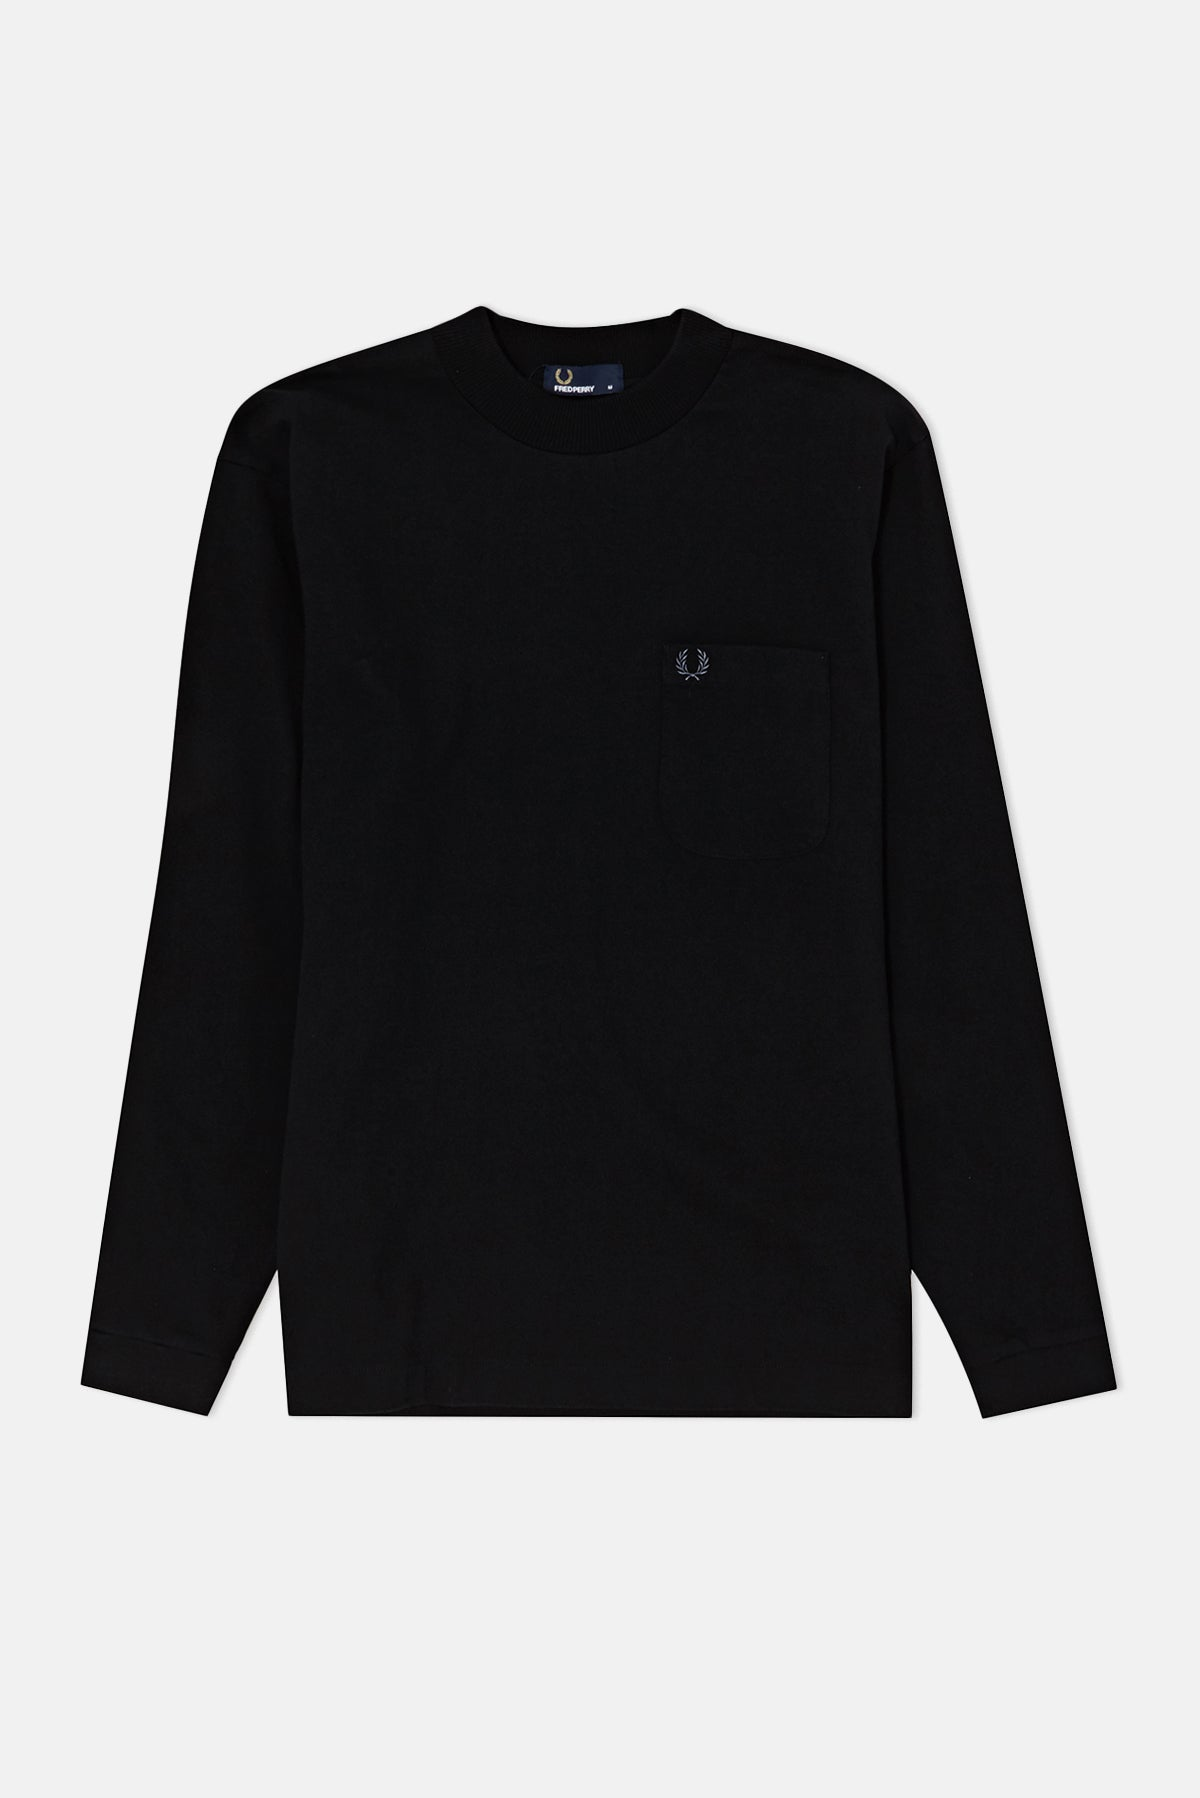 1f73f2e5bee6 Fred Perry High-neck L S T-Shirt available from Priory